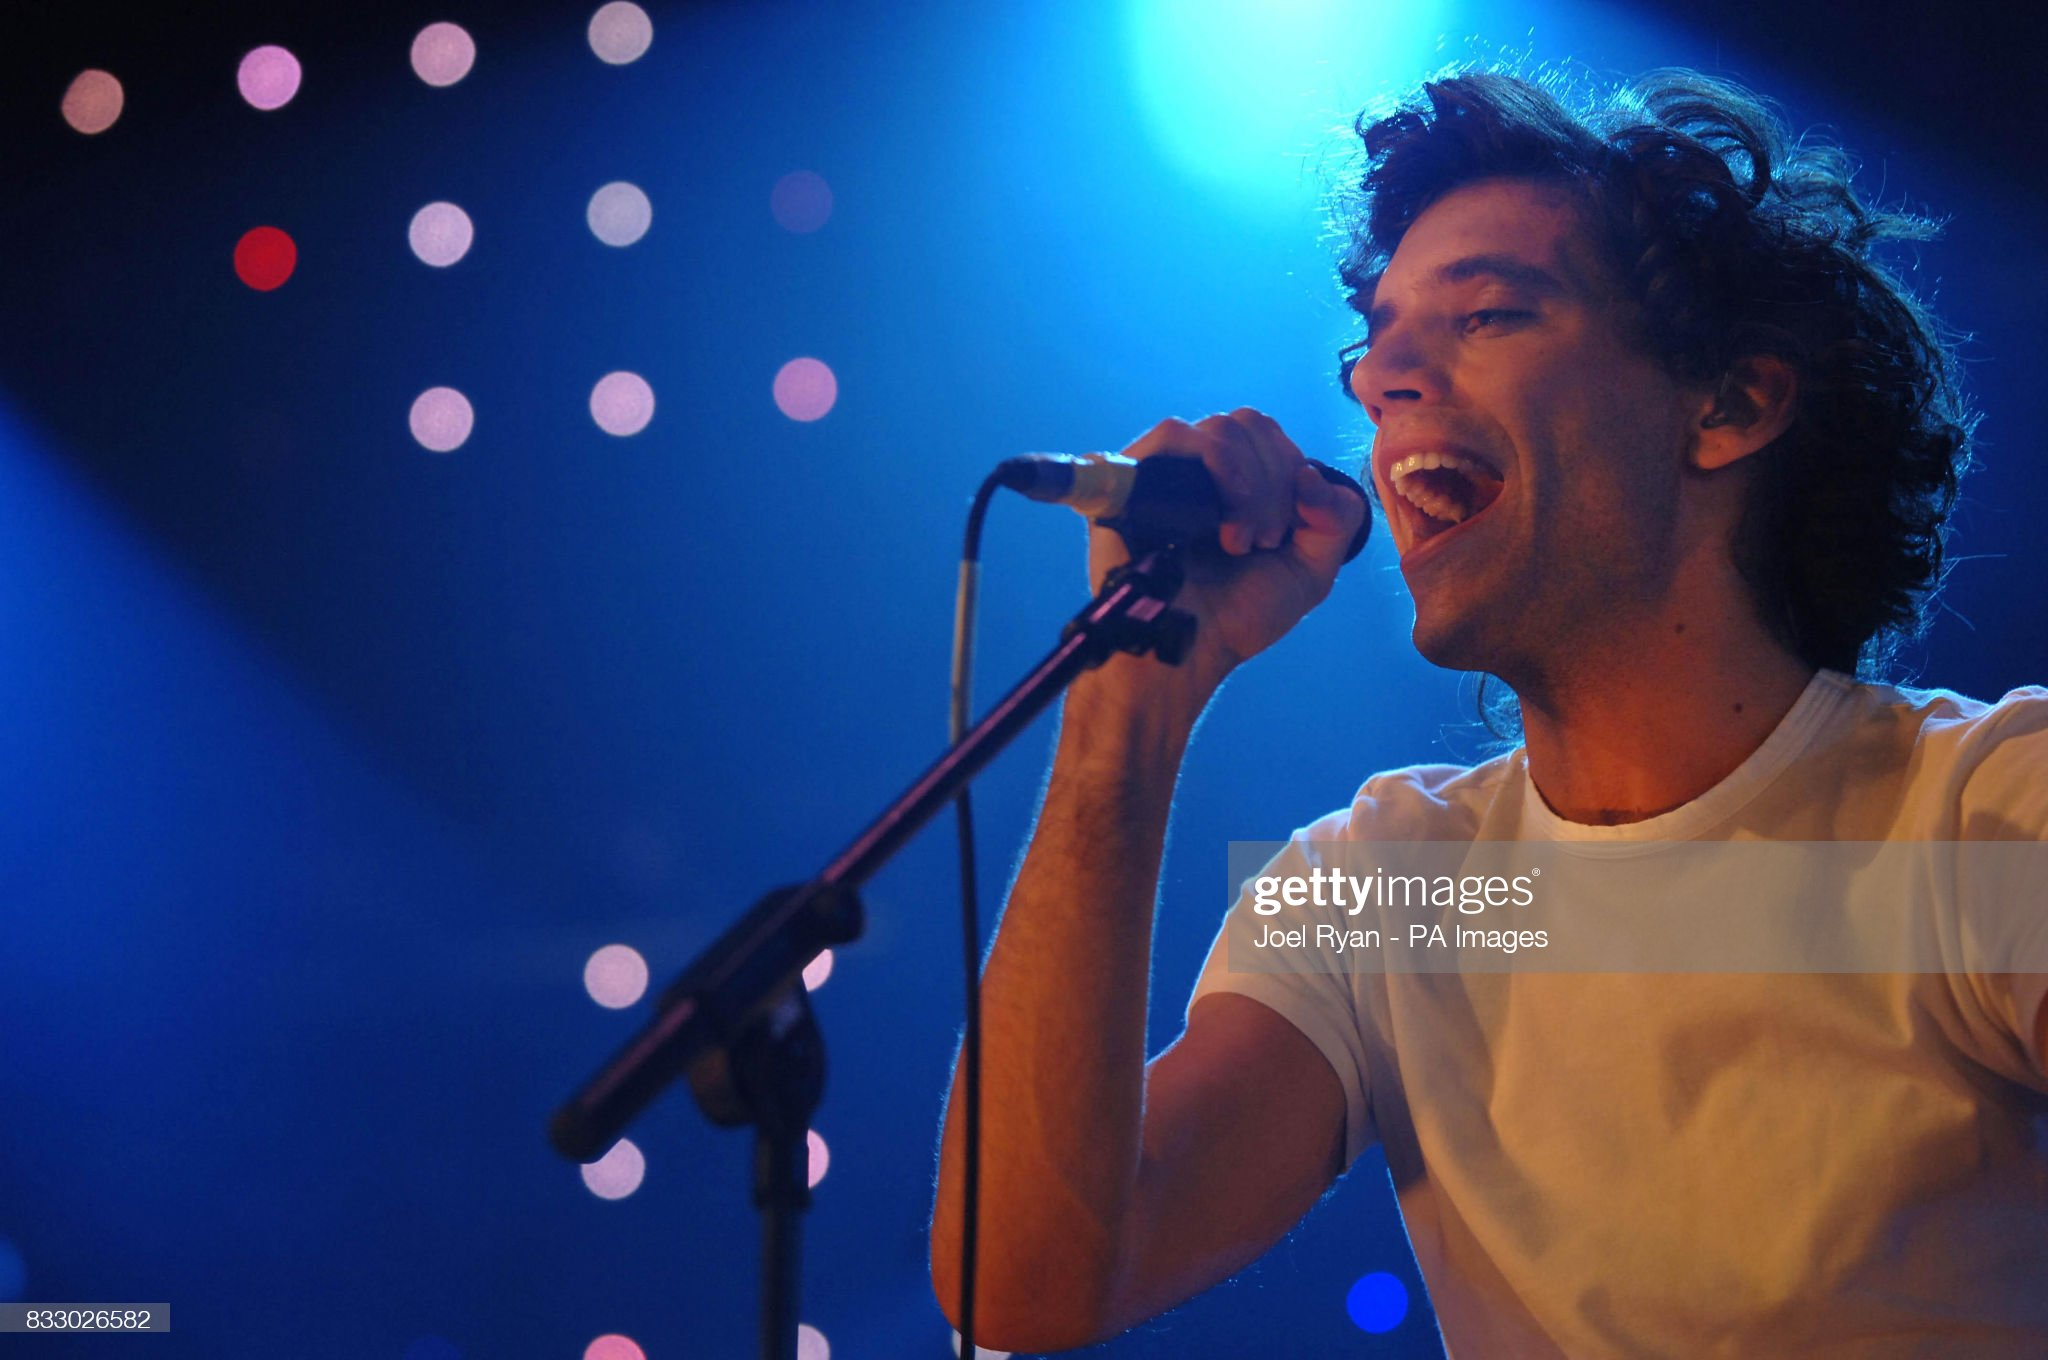 mika-performs-during-bbc-radio-1s-big-we